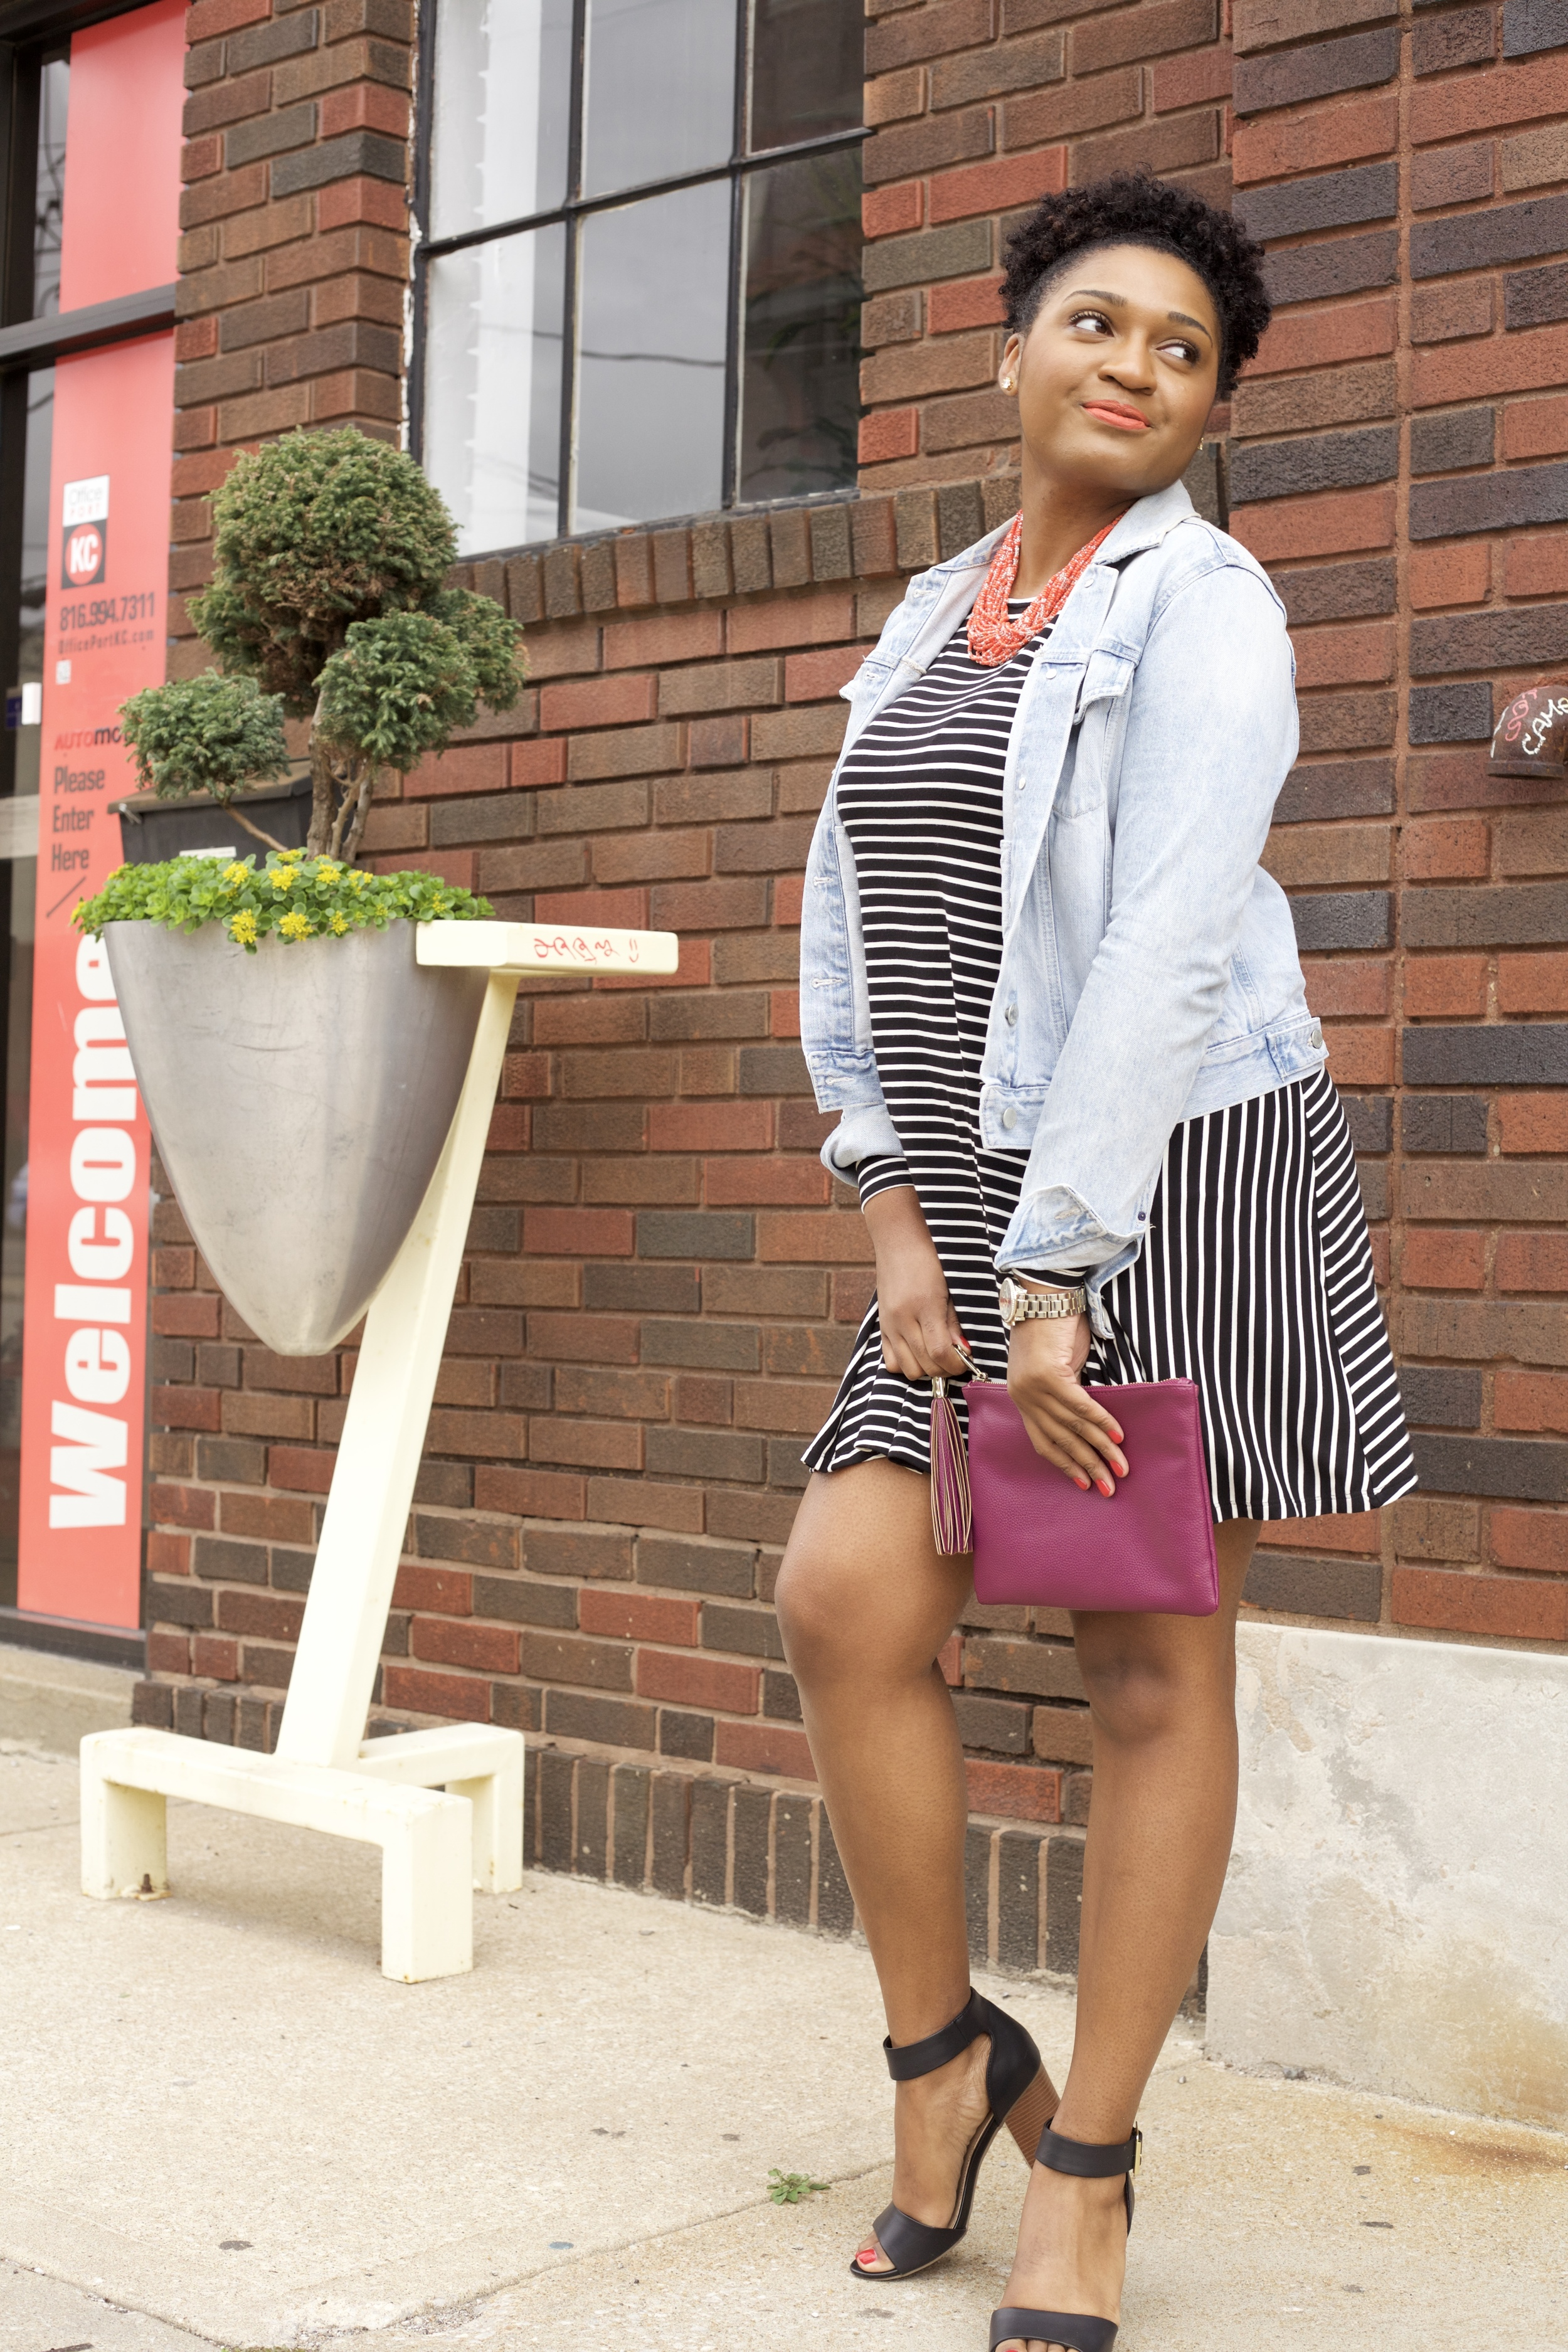 Wearing gap like a boss by black fashion blogger jasmine cooper of jasminediane.com.